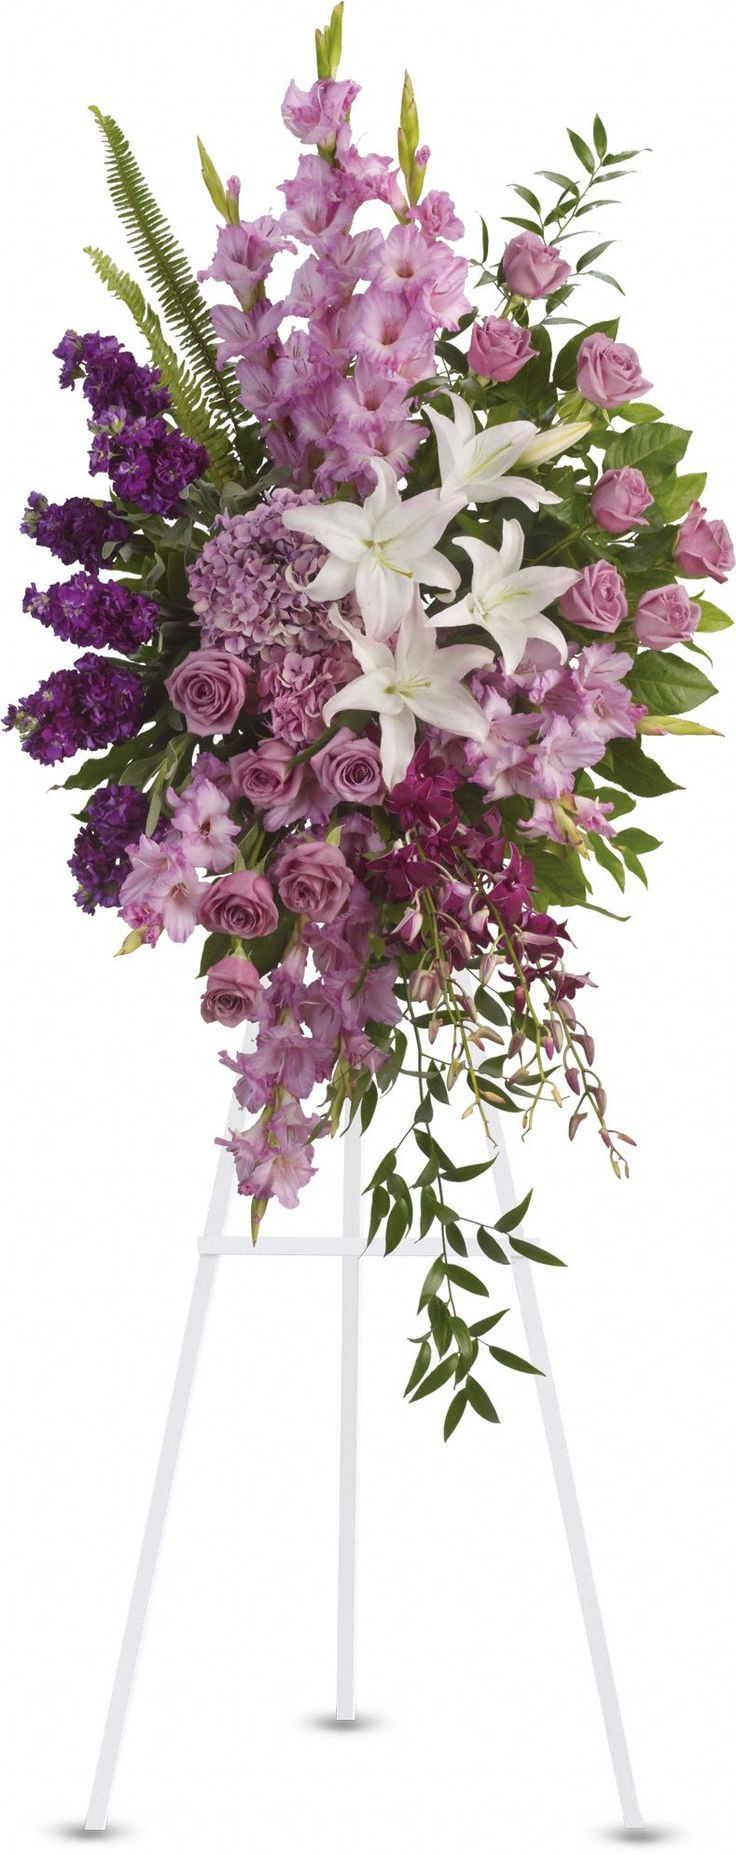 Best 25 Funeral Homes Ideas On Pinterest: Top 25+ Best Flowers For Funeral Ideas On Pinterest